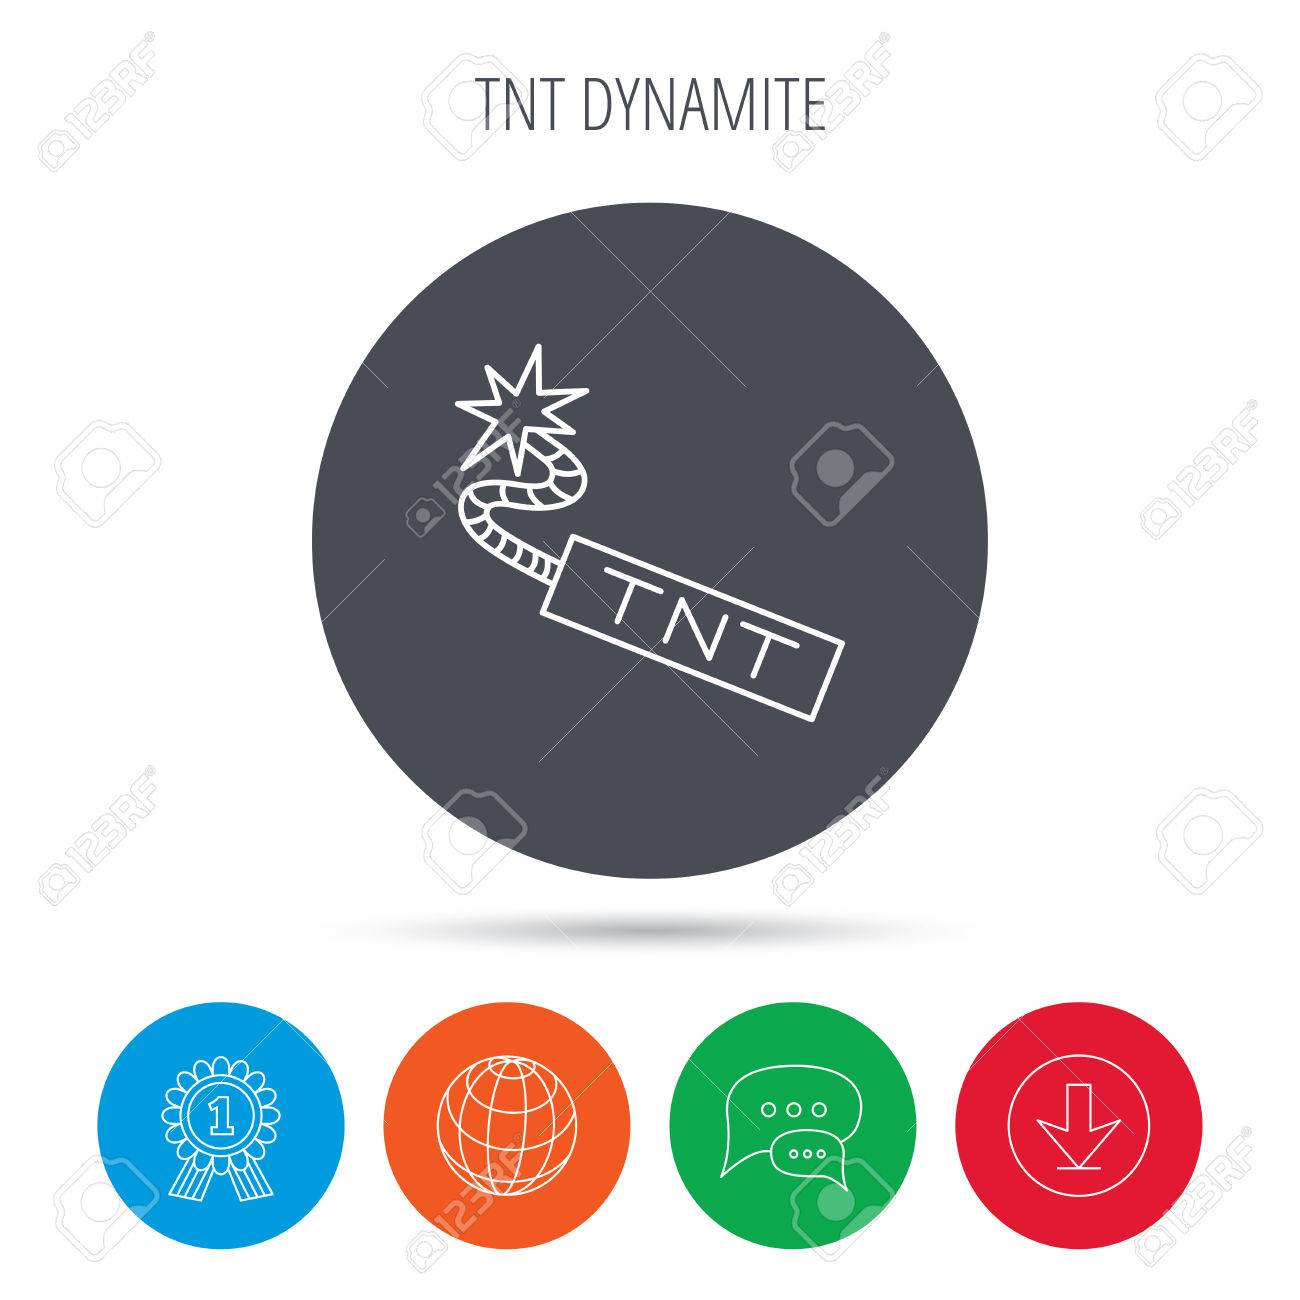 Tnt dynamite icon bomb explosion sign globe download and speech bomb explosion sign globe download and speech bubble buttons buycottarizona